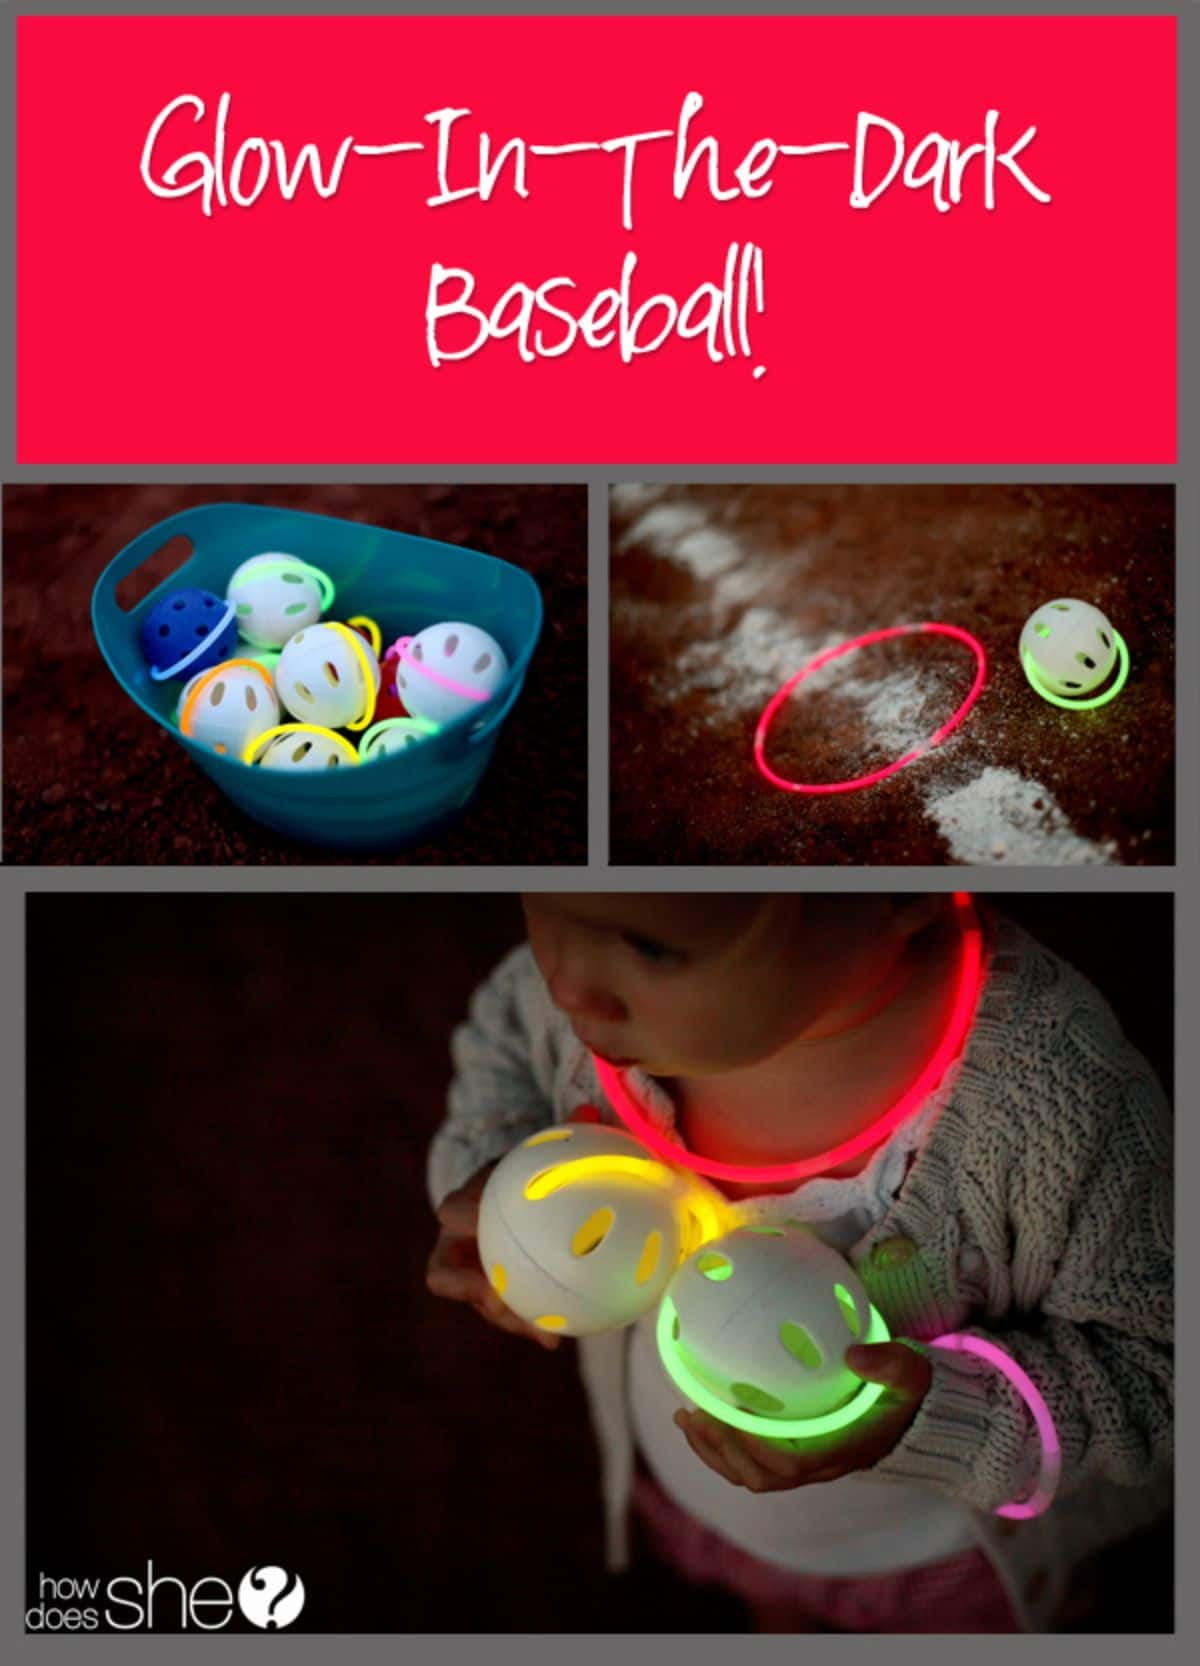 """The text reads """"Glow in the Dark Baseball!"""" the images are of a bucket full of balls wrapped with glow stiks, and a child holding two glowing balls"""